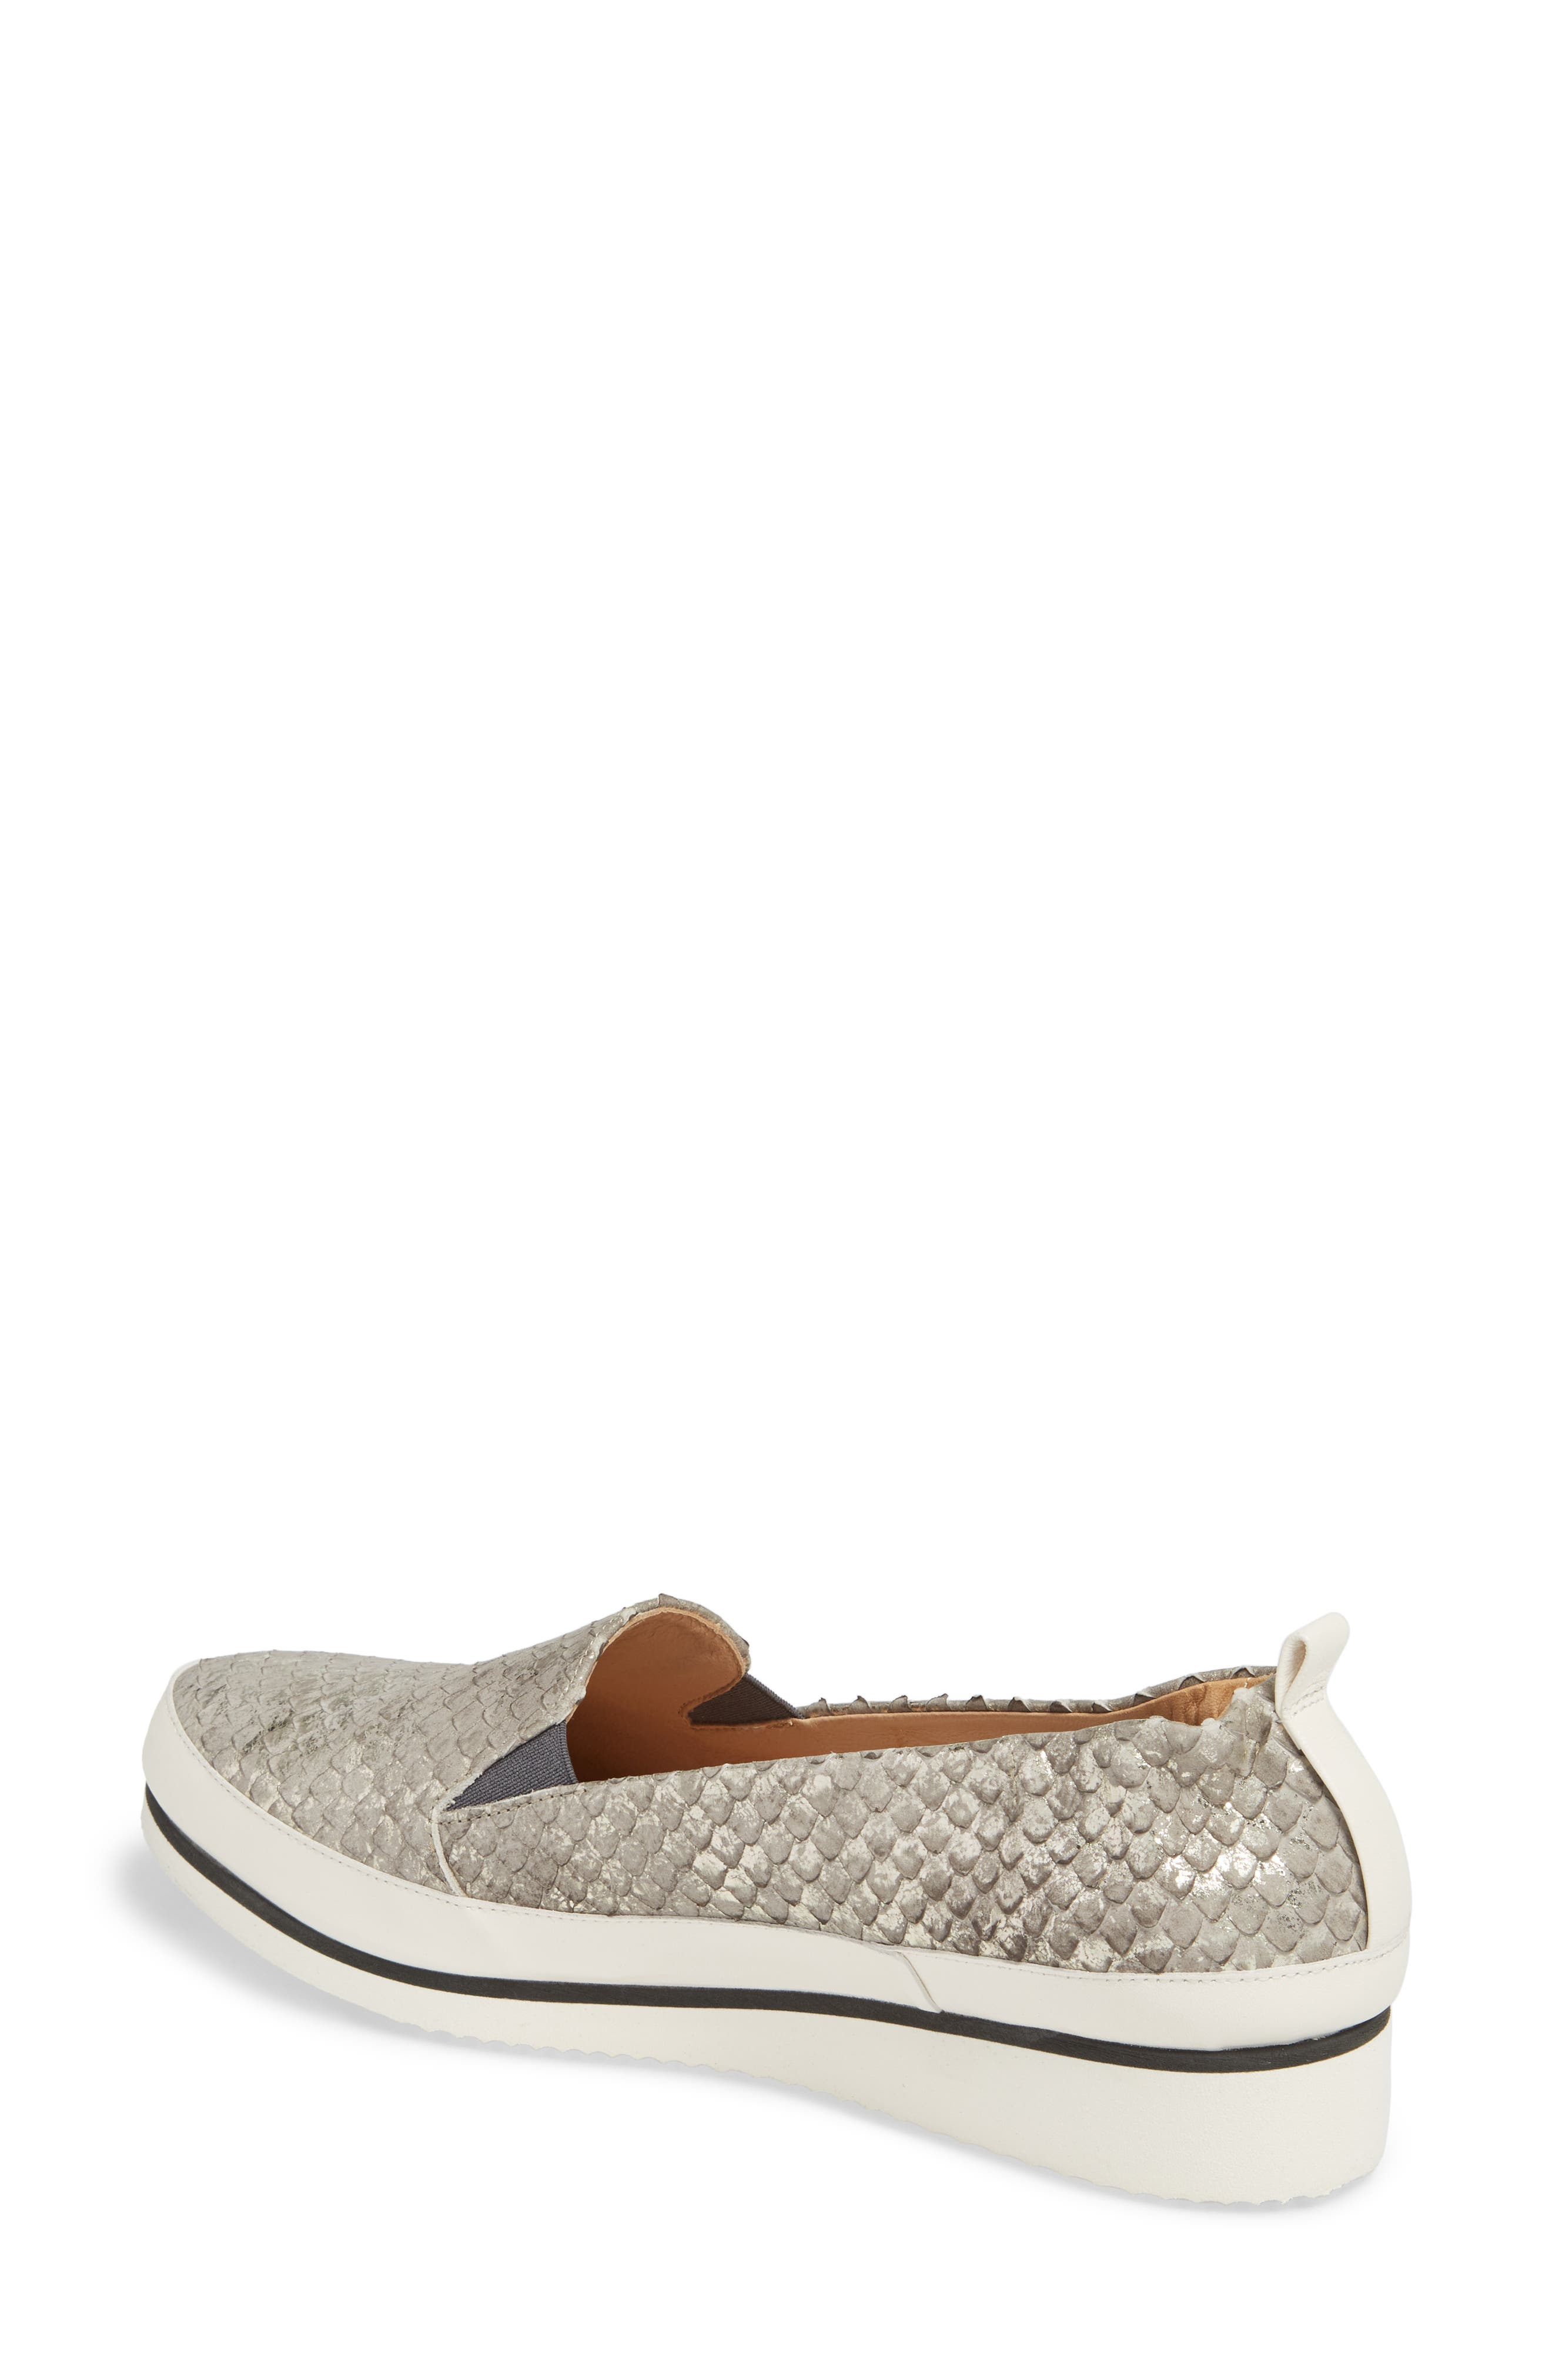 Nell Slip-On Sneaker,                             Alternate thumbnail 2, color,                             Pewter Leather